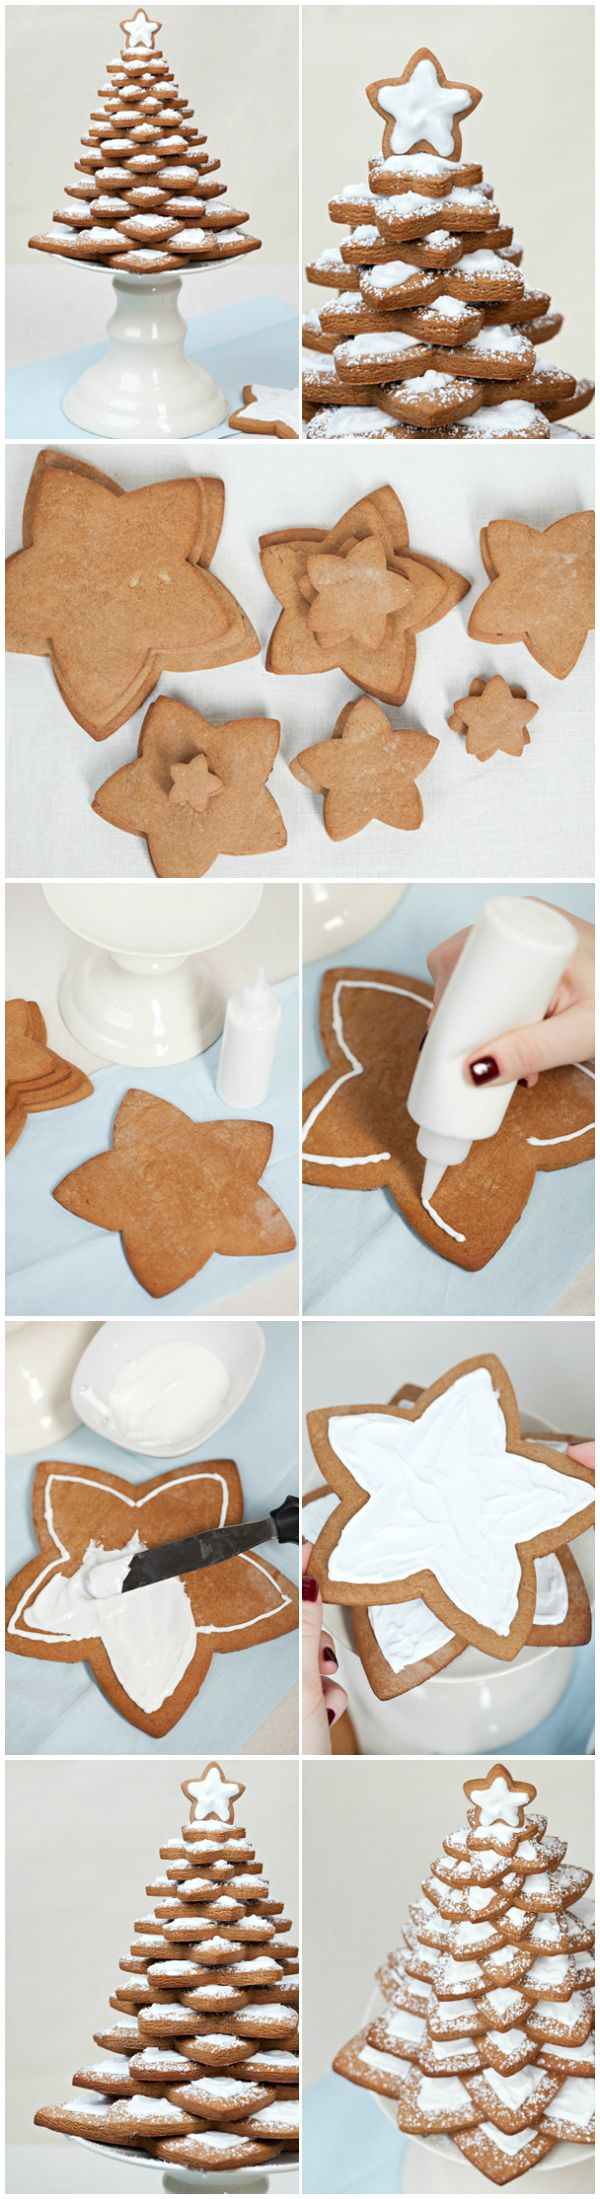 Step-by-step pictures. How to make and decorate your gingerbread tree.  Steg-för-steg bilder. Så här kan du göra när du bakar din egen kakgran...